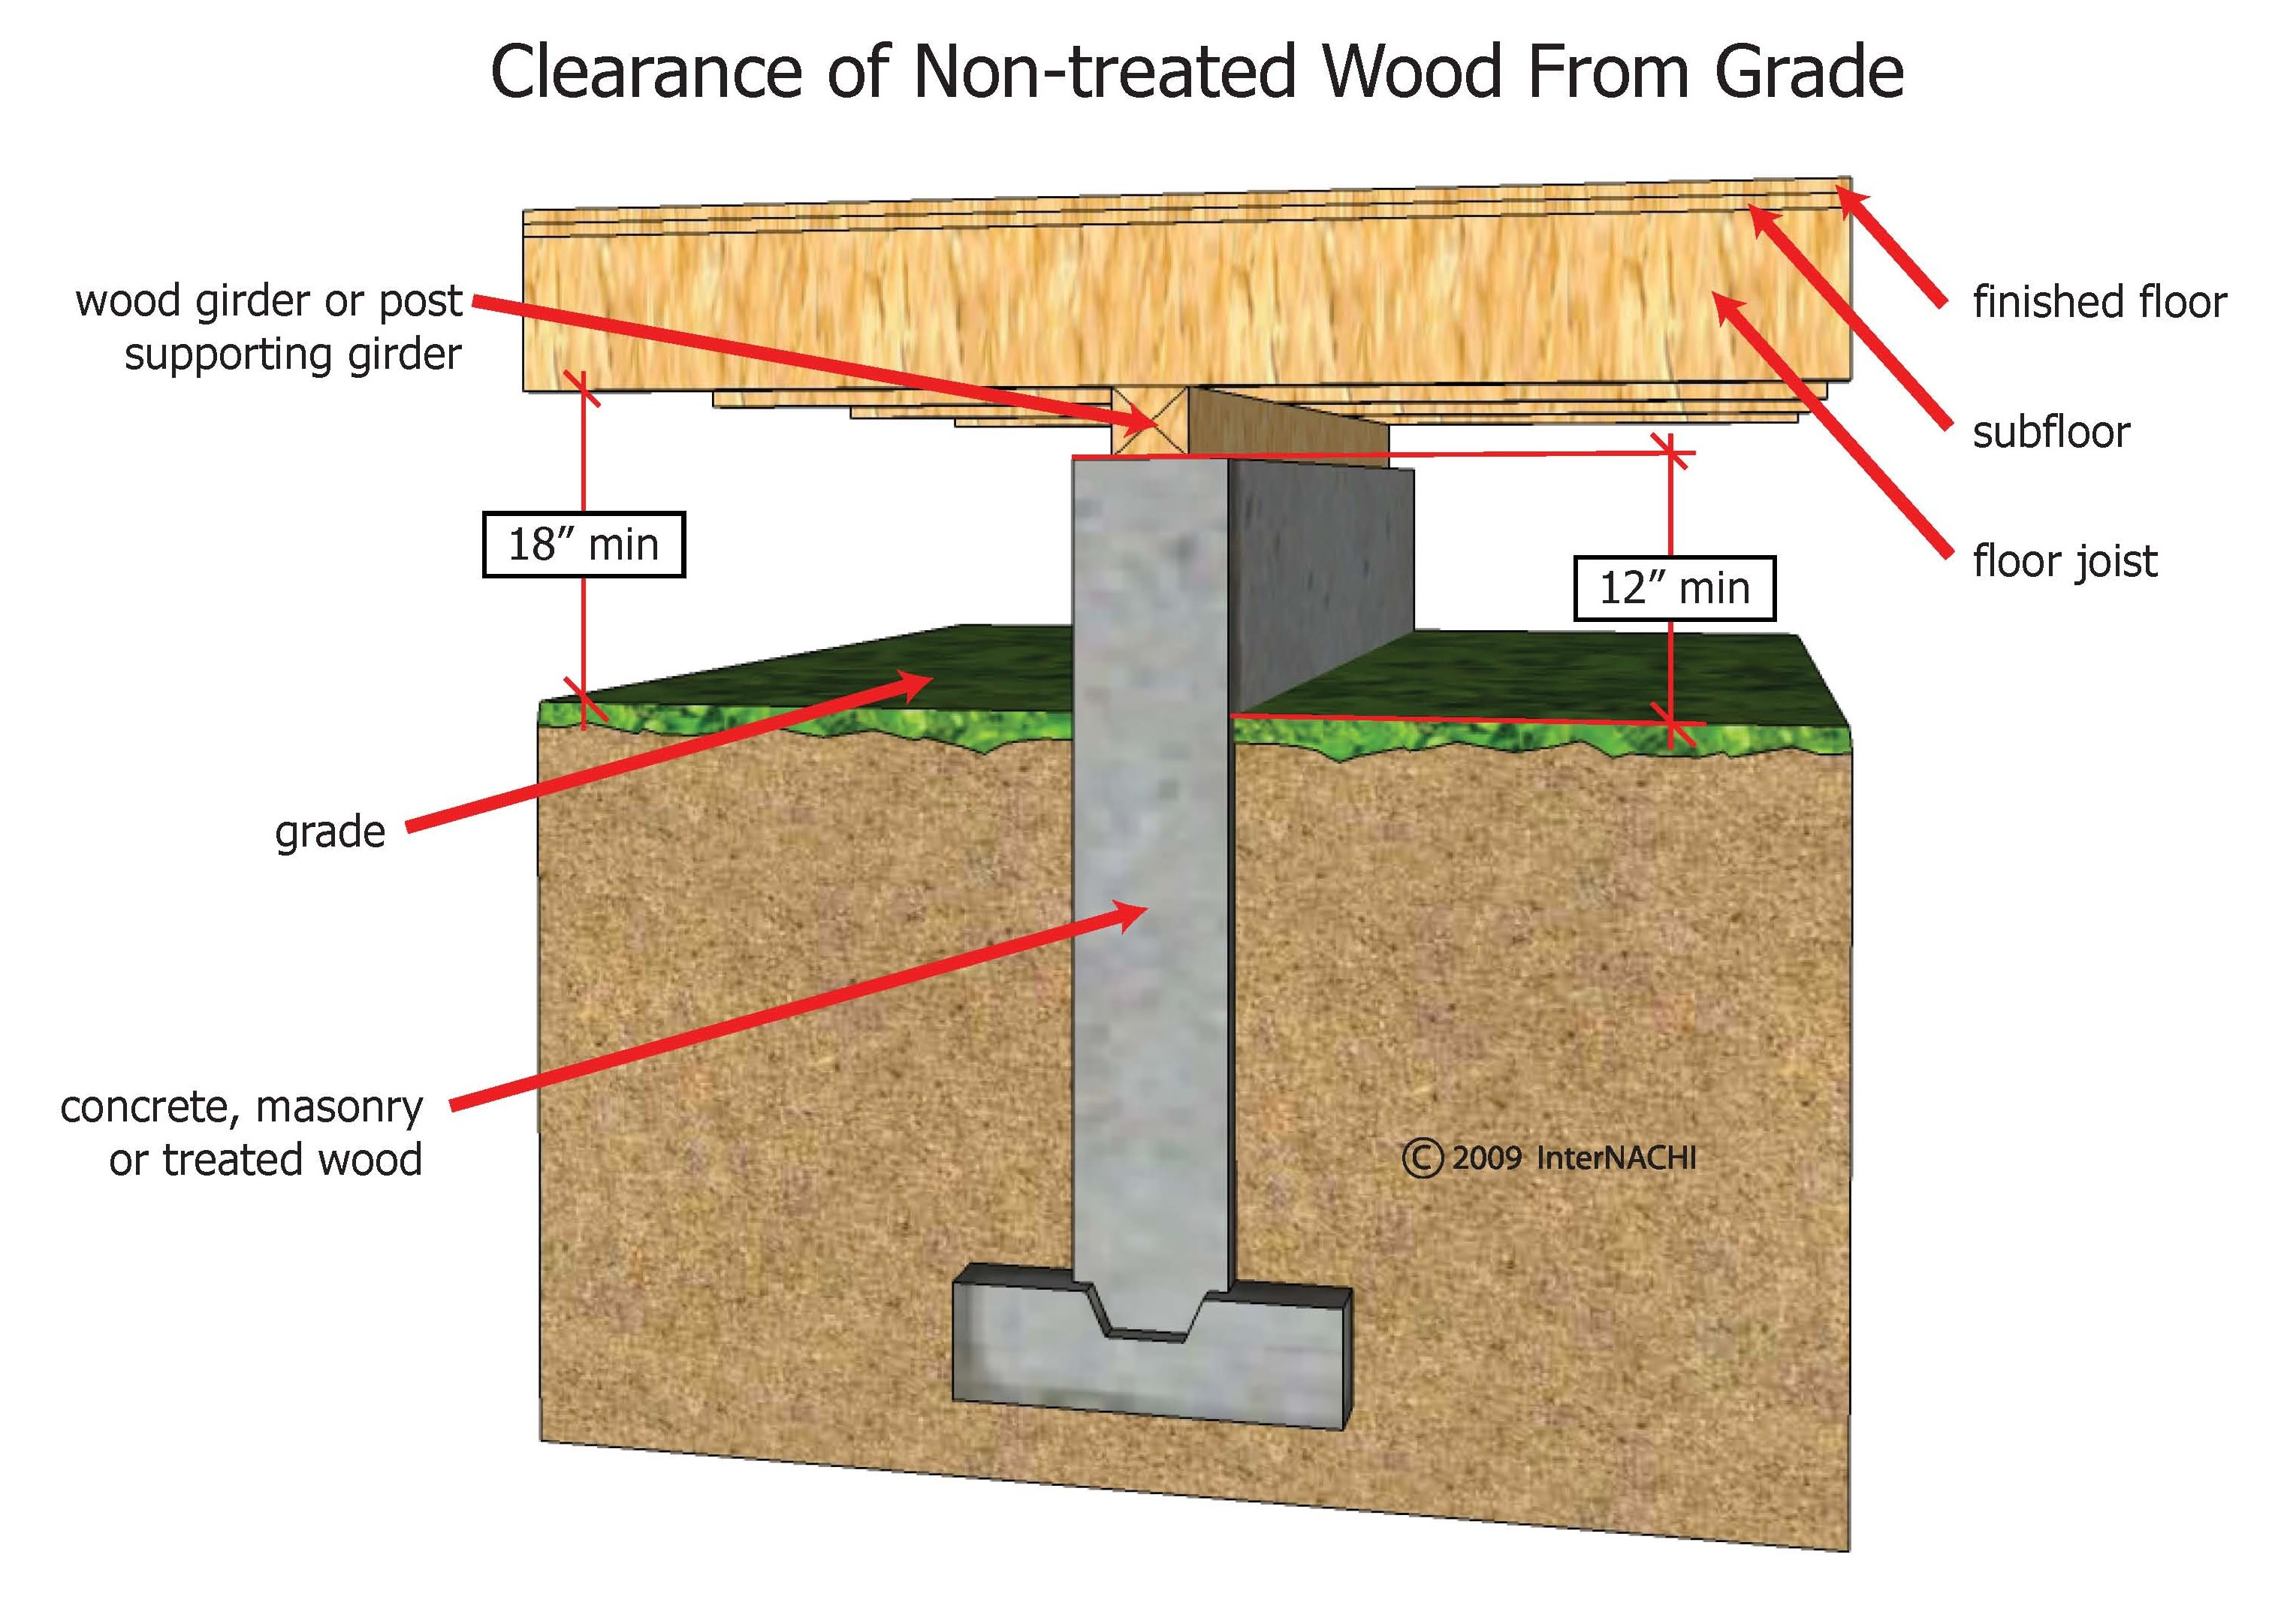 Clearance of non-treated wood from grade.